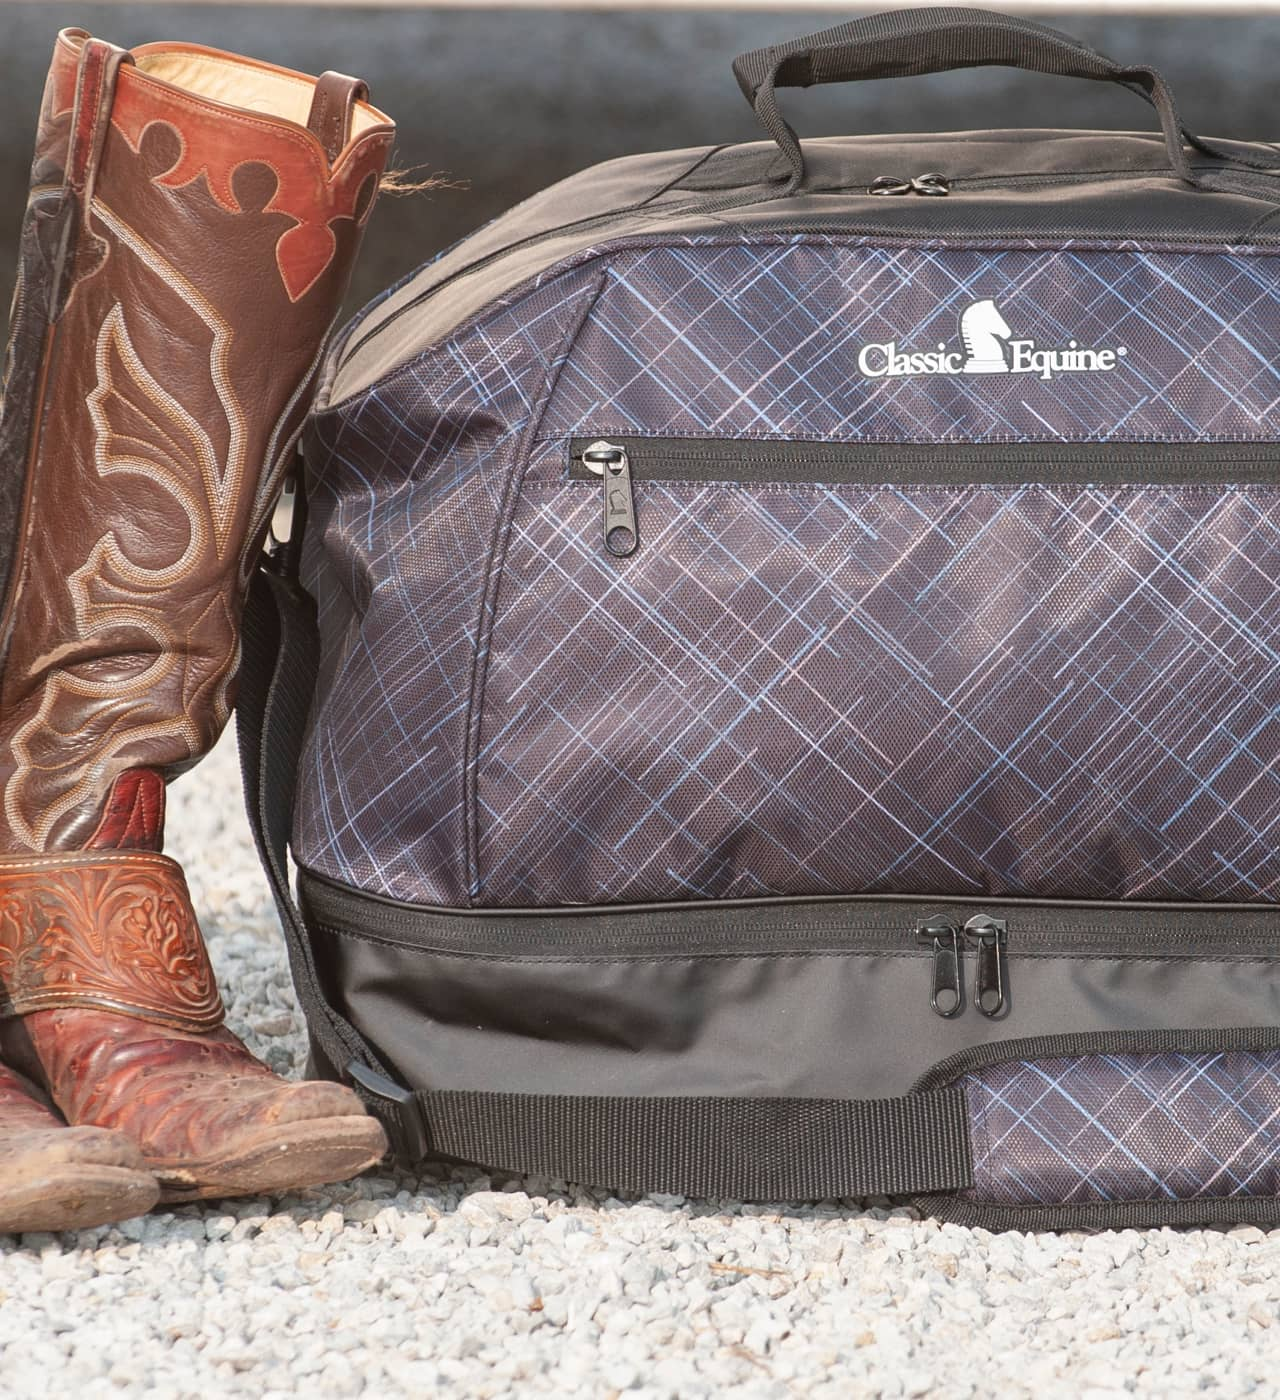 Classic Equine has a full line of travel bags for the frequent traveler